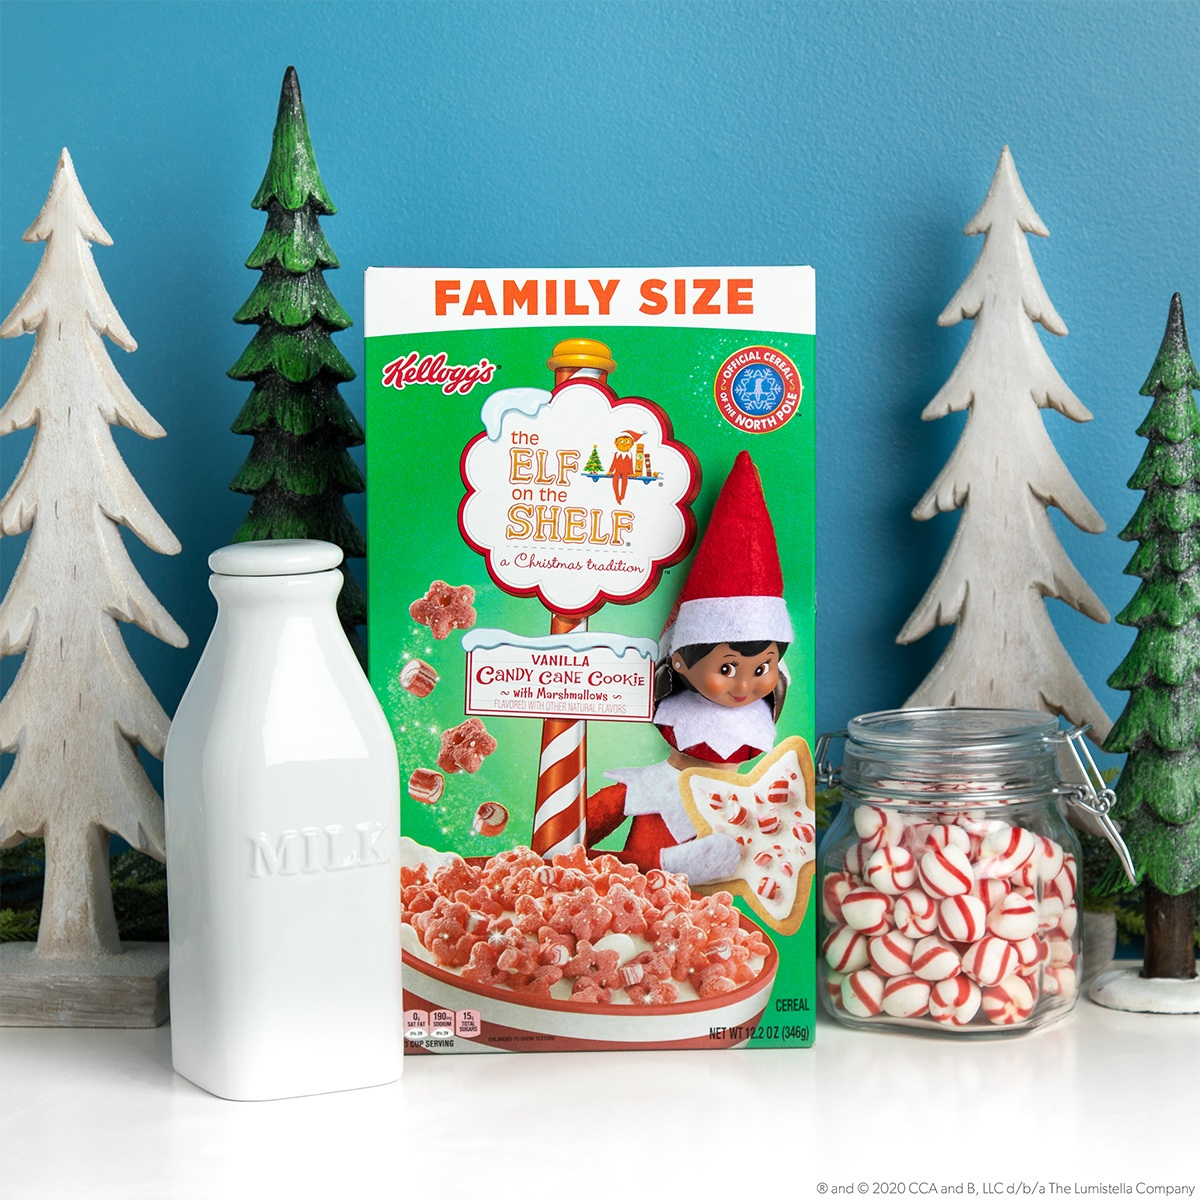 Cereal Box Surprise image